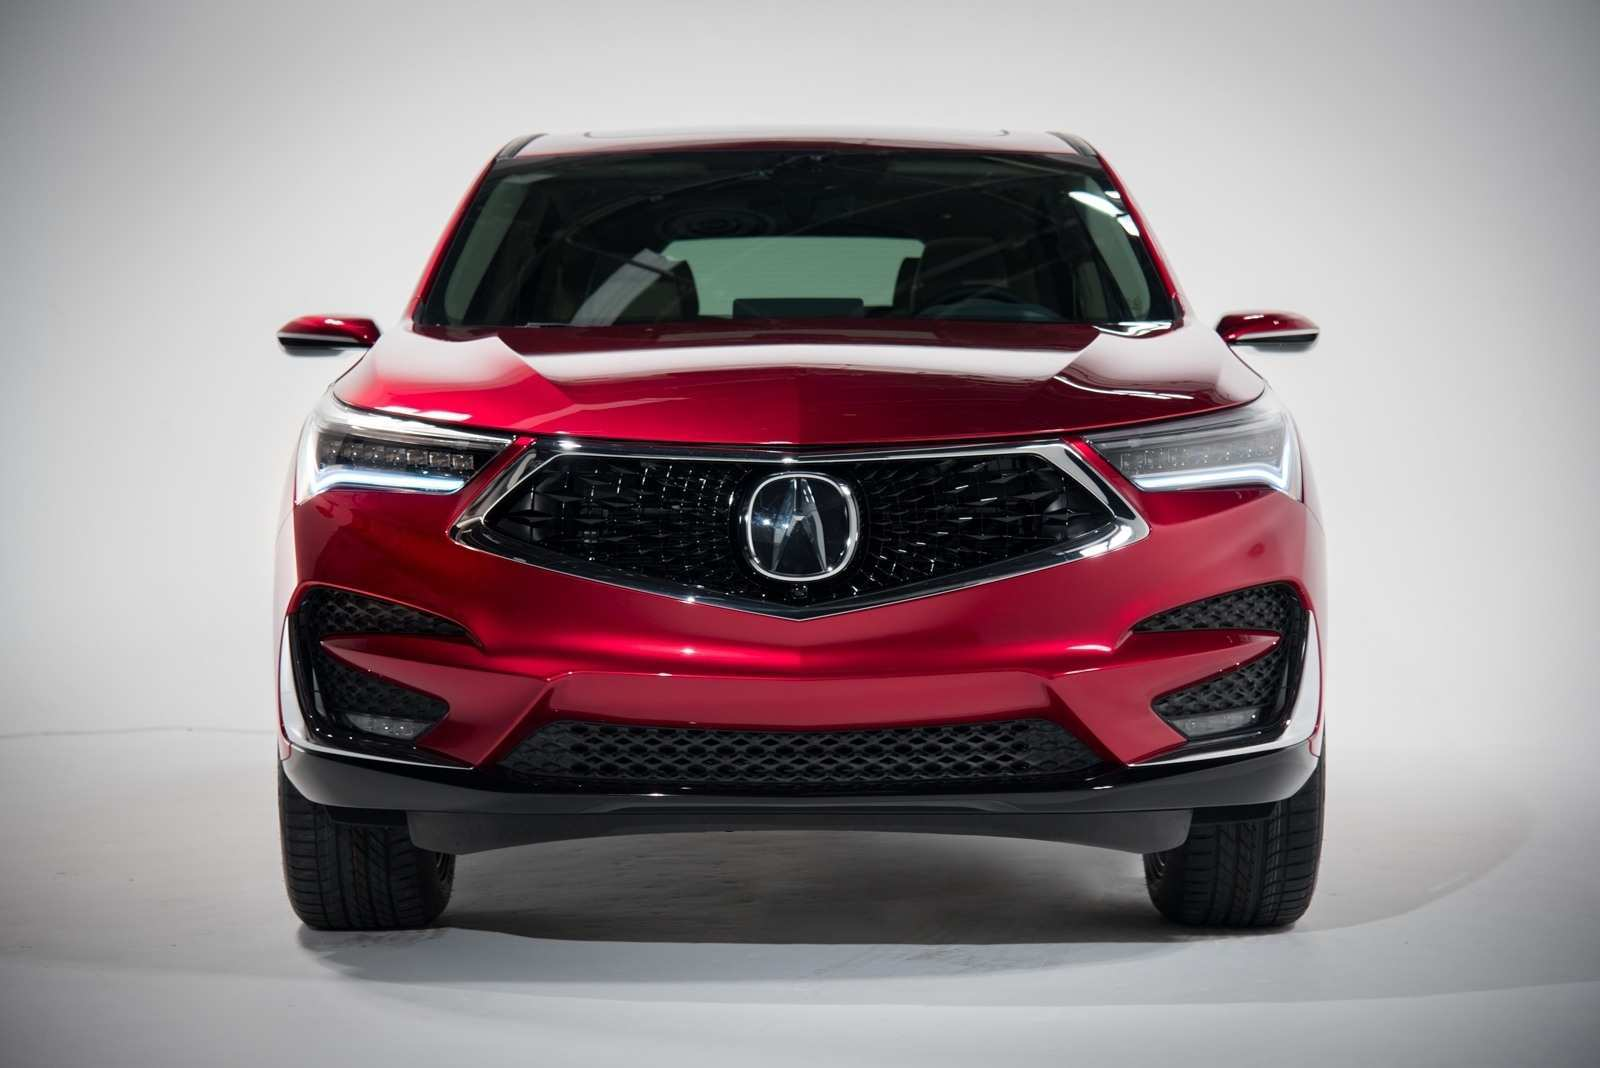 55 Best Review Best 2019 Acura Packages First Drive History with Best 2019 Acura Packages First Drive